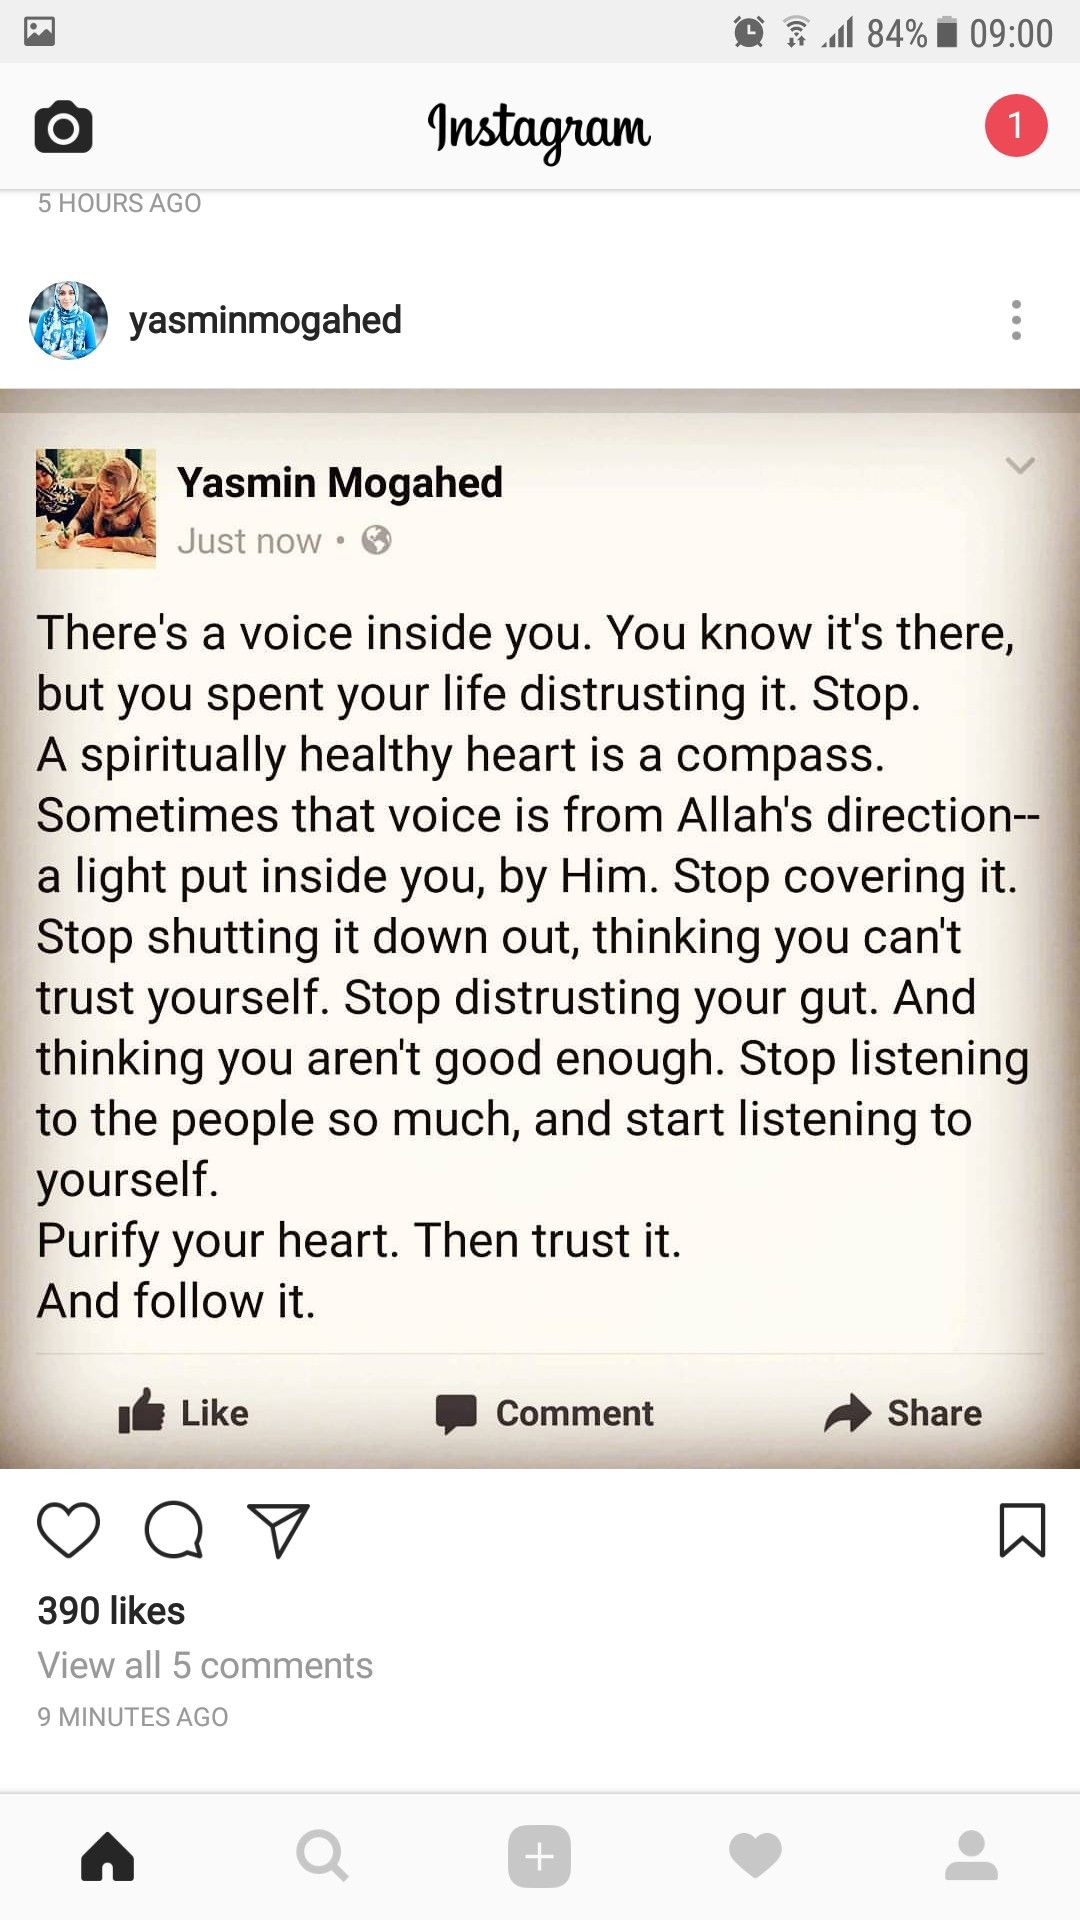 Pin by momina on i pinterest alhamdulillah allah and islamic allah islamic website favorite quotes sayings altavistaventures Image collections